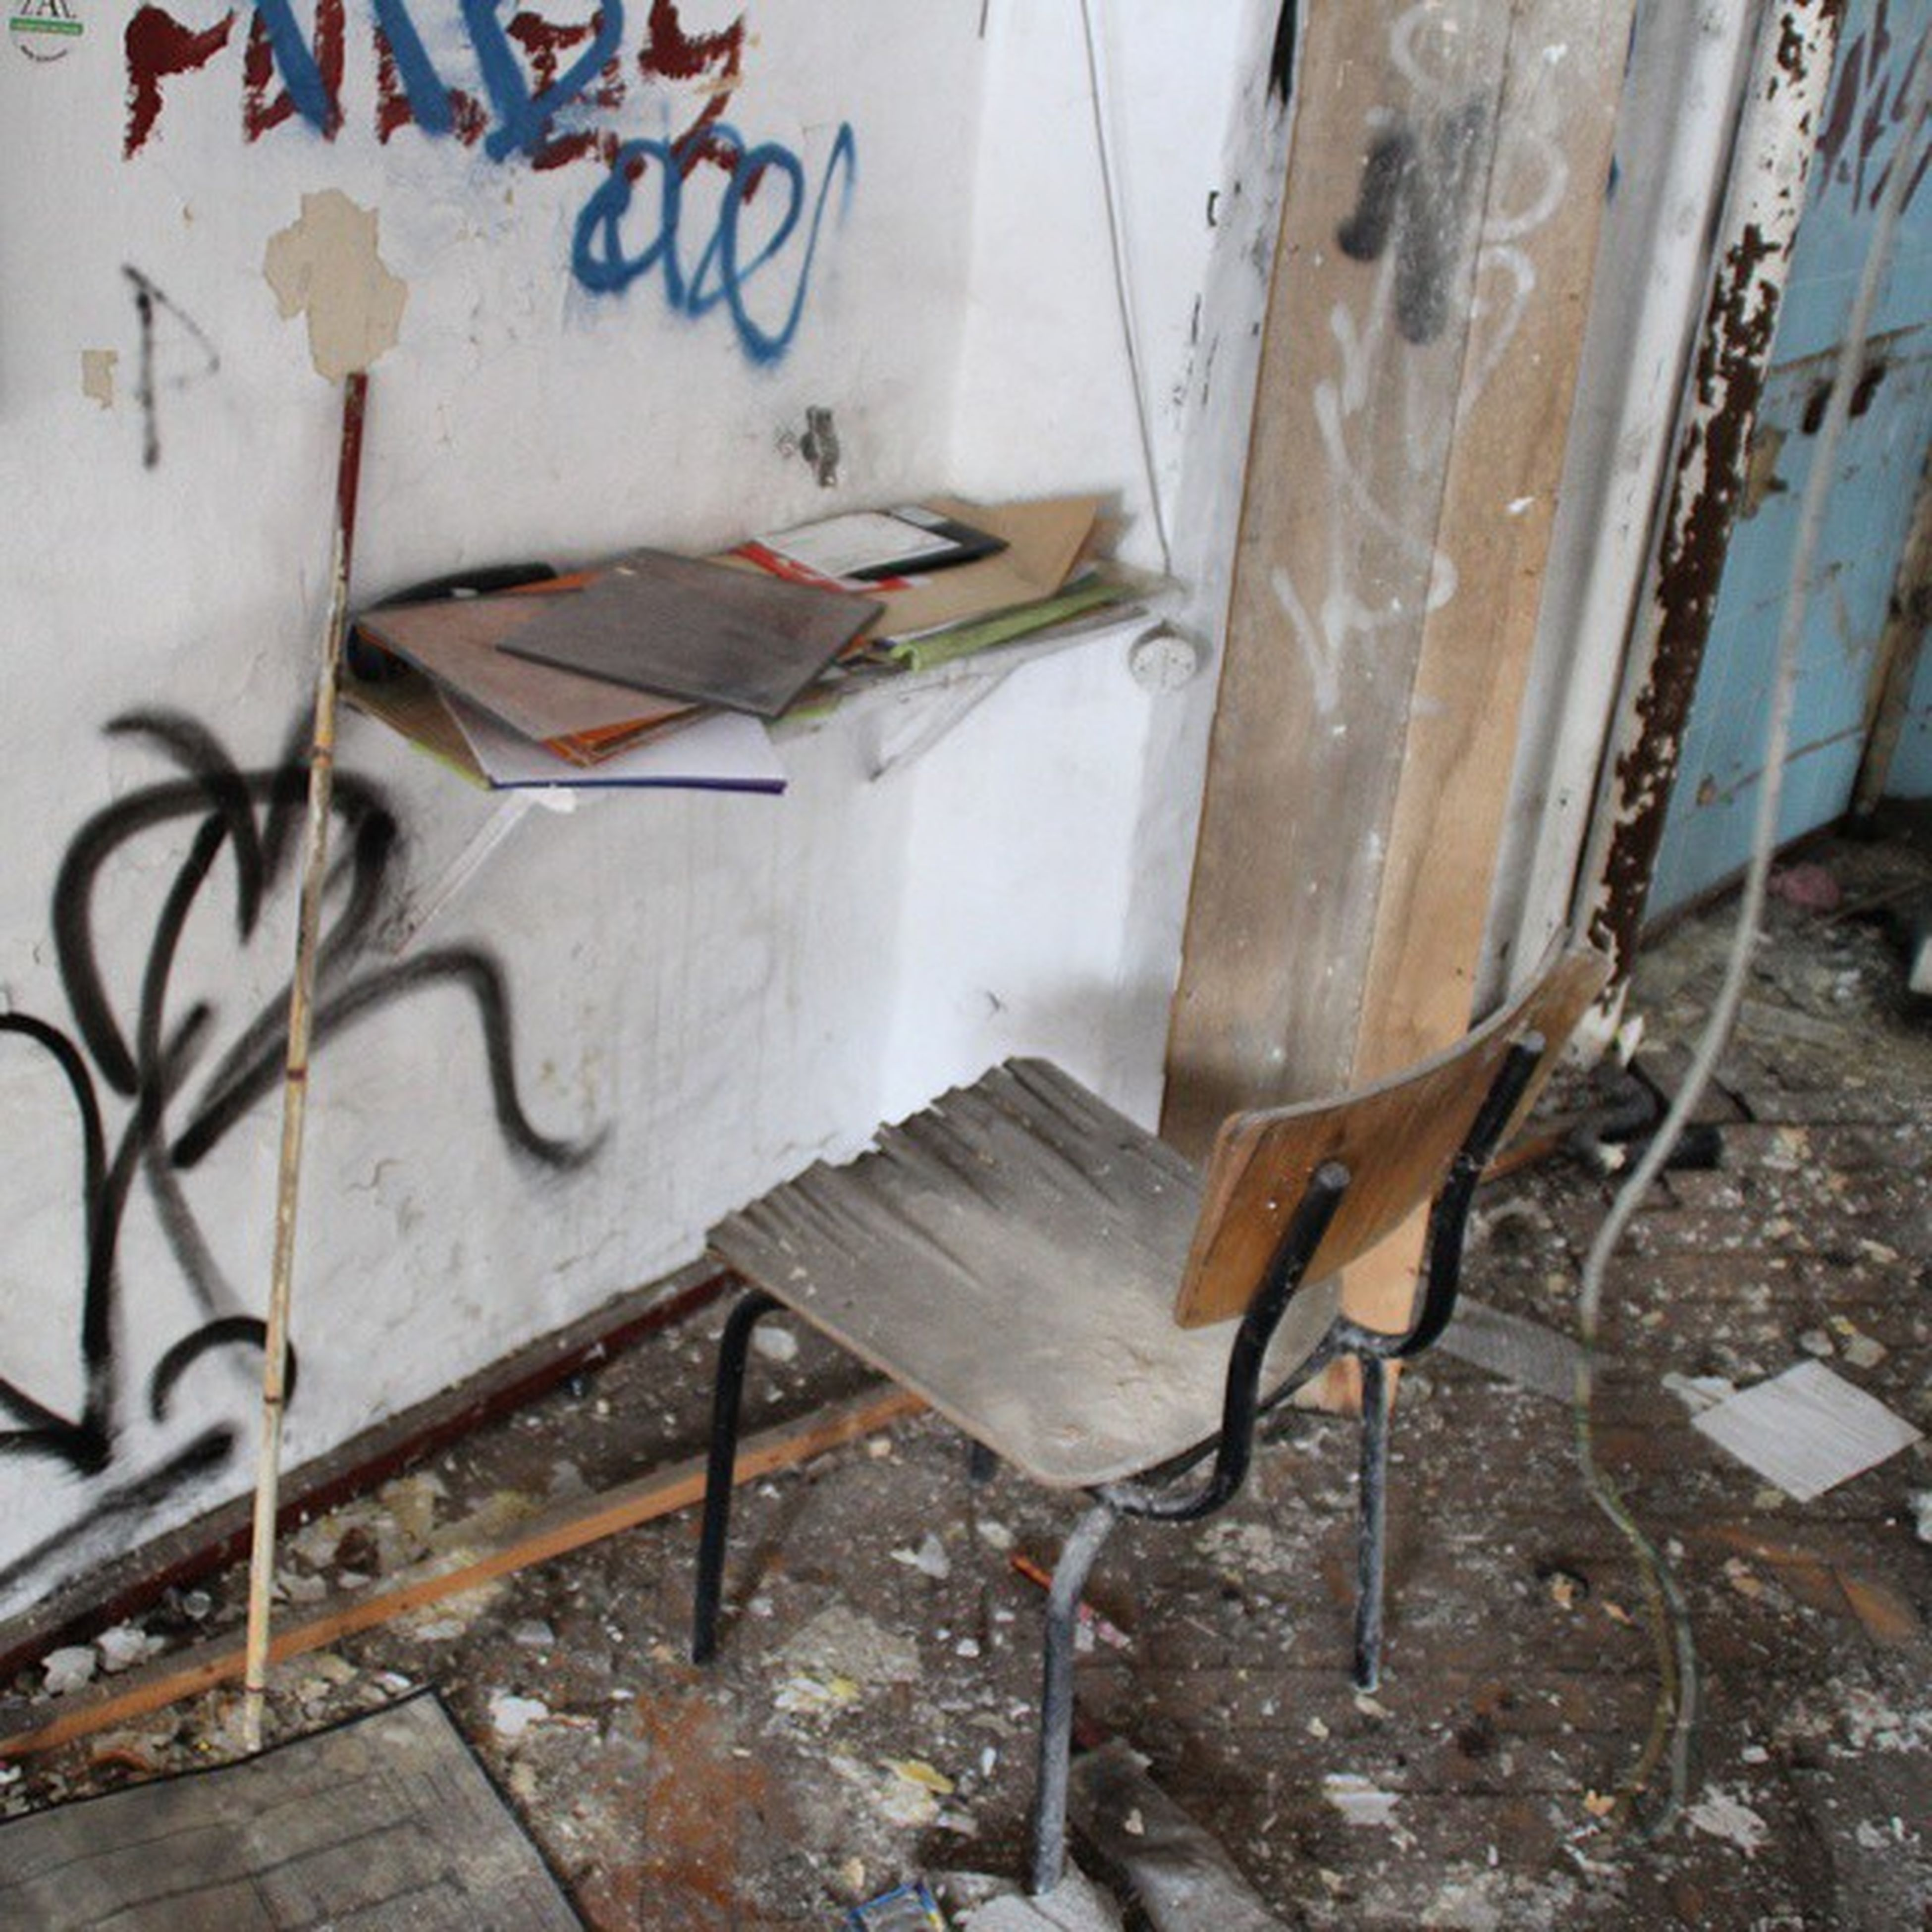 abandoned, messy, old, damaged, obsolete, wall - building feature, deterioration, run-down, indoors, wall, weathered, built structure, graffiti, no people, dirty, bad condition, wood - material, architecture, broken, hanging